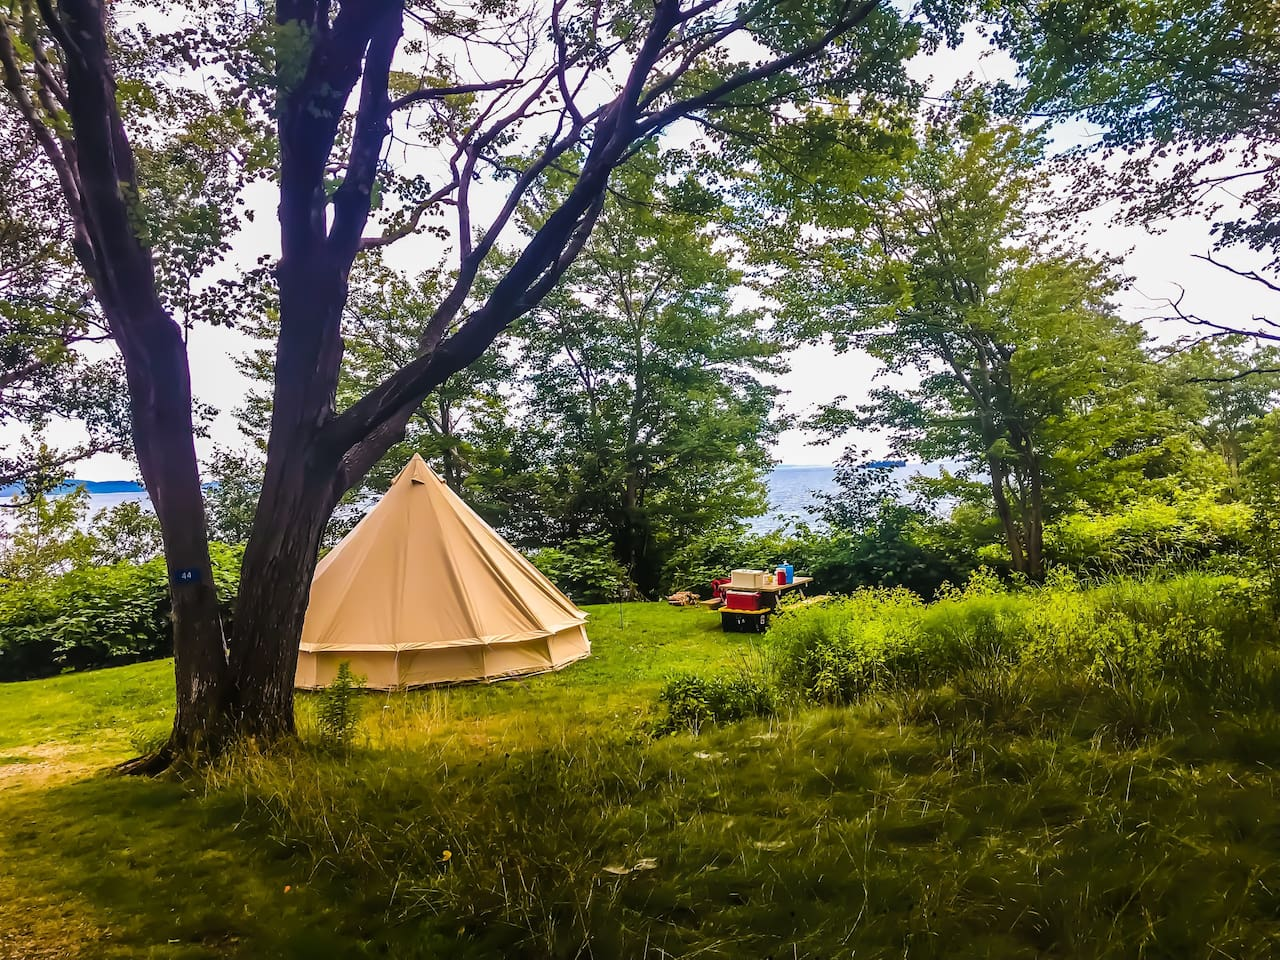 East Coast Glamping in safari-style tents. Maritime camping complete with all the camping gear in beautiful campgrounds around Nova Scotia.